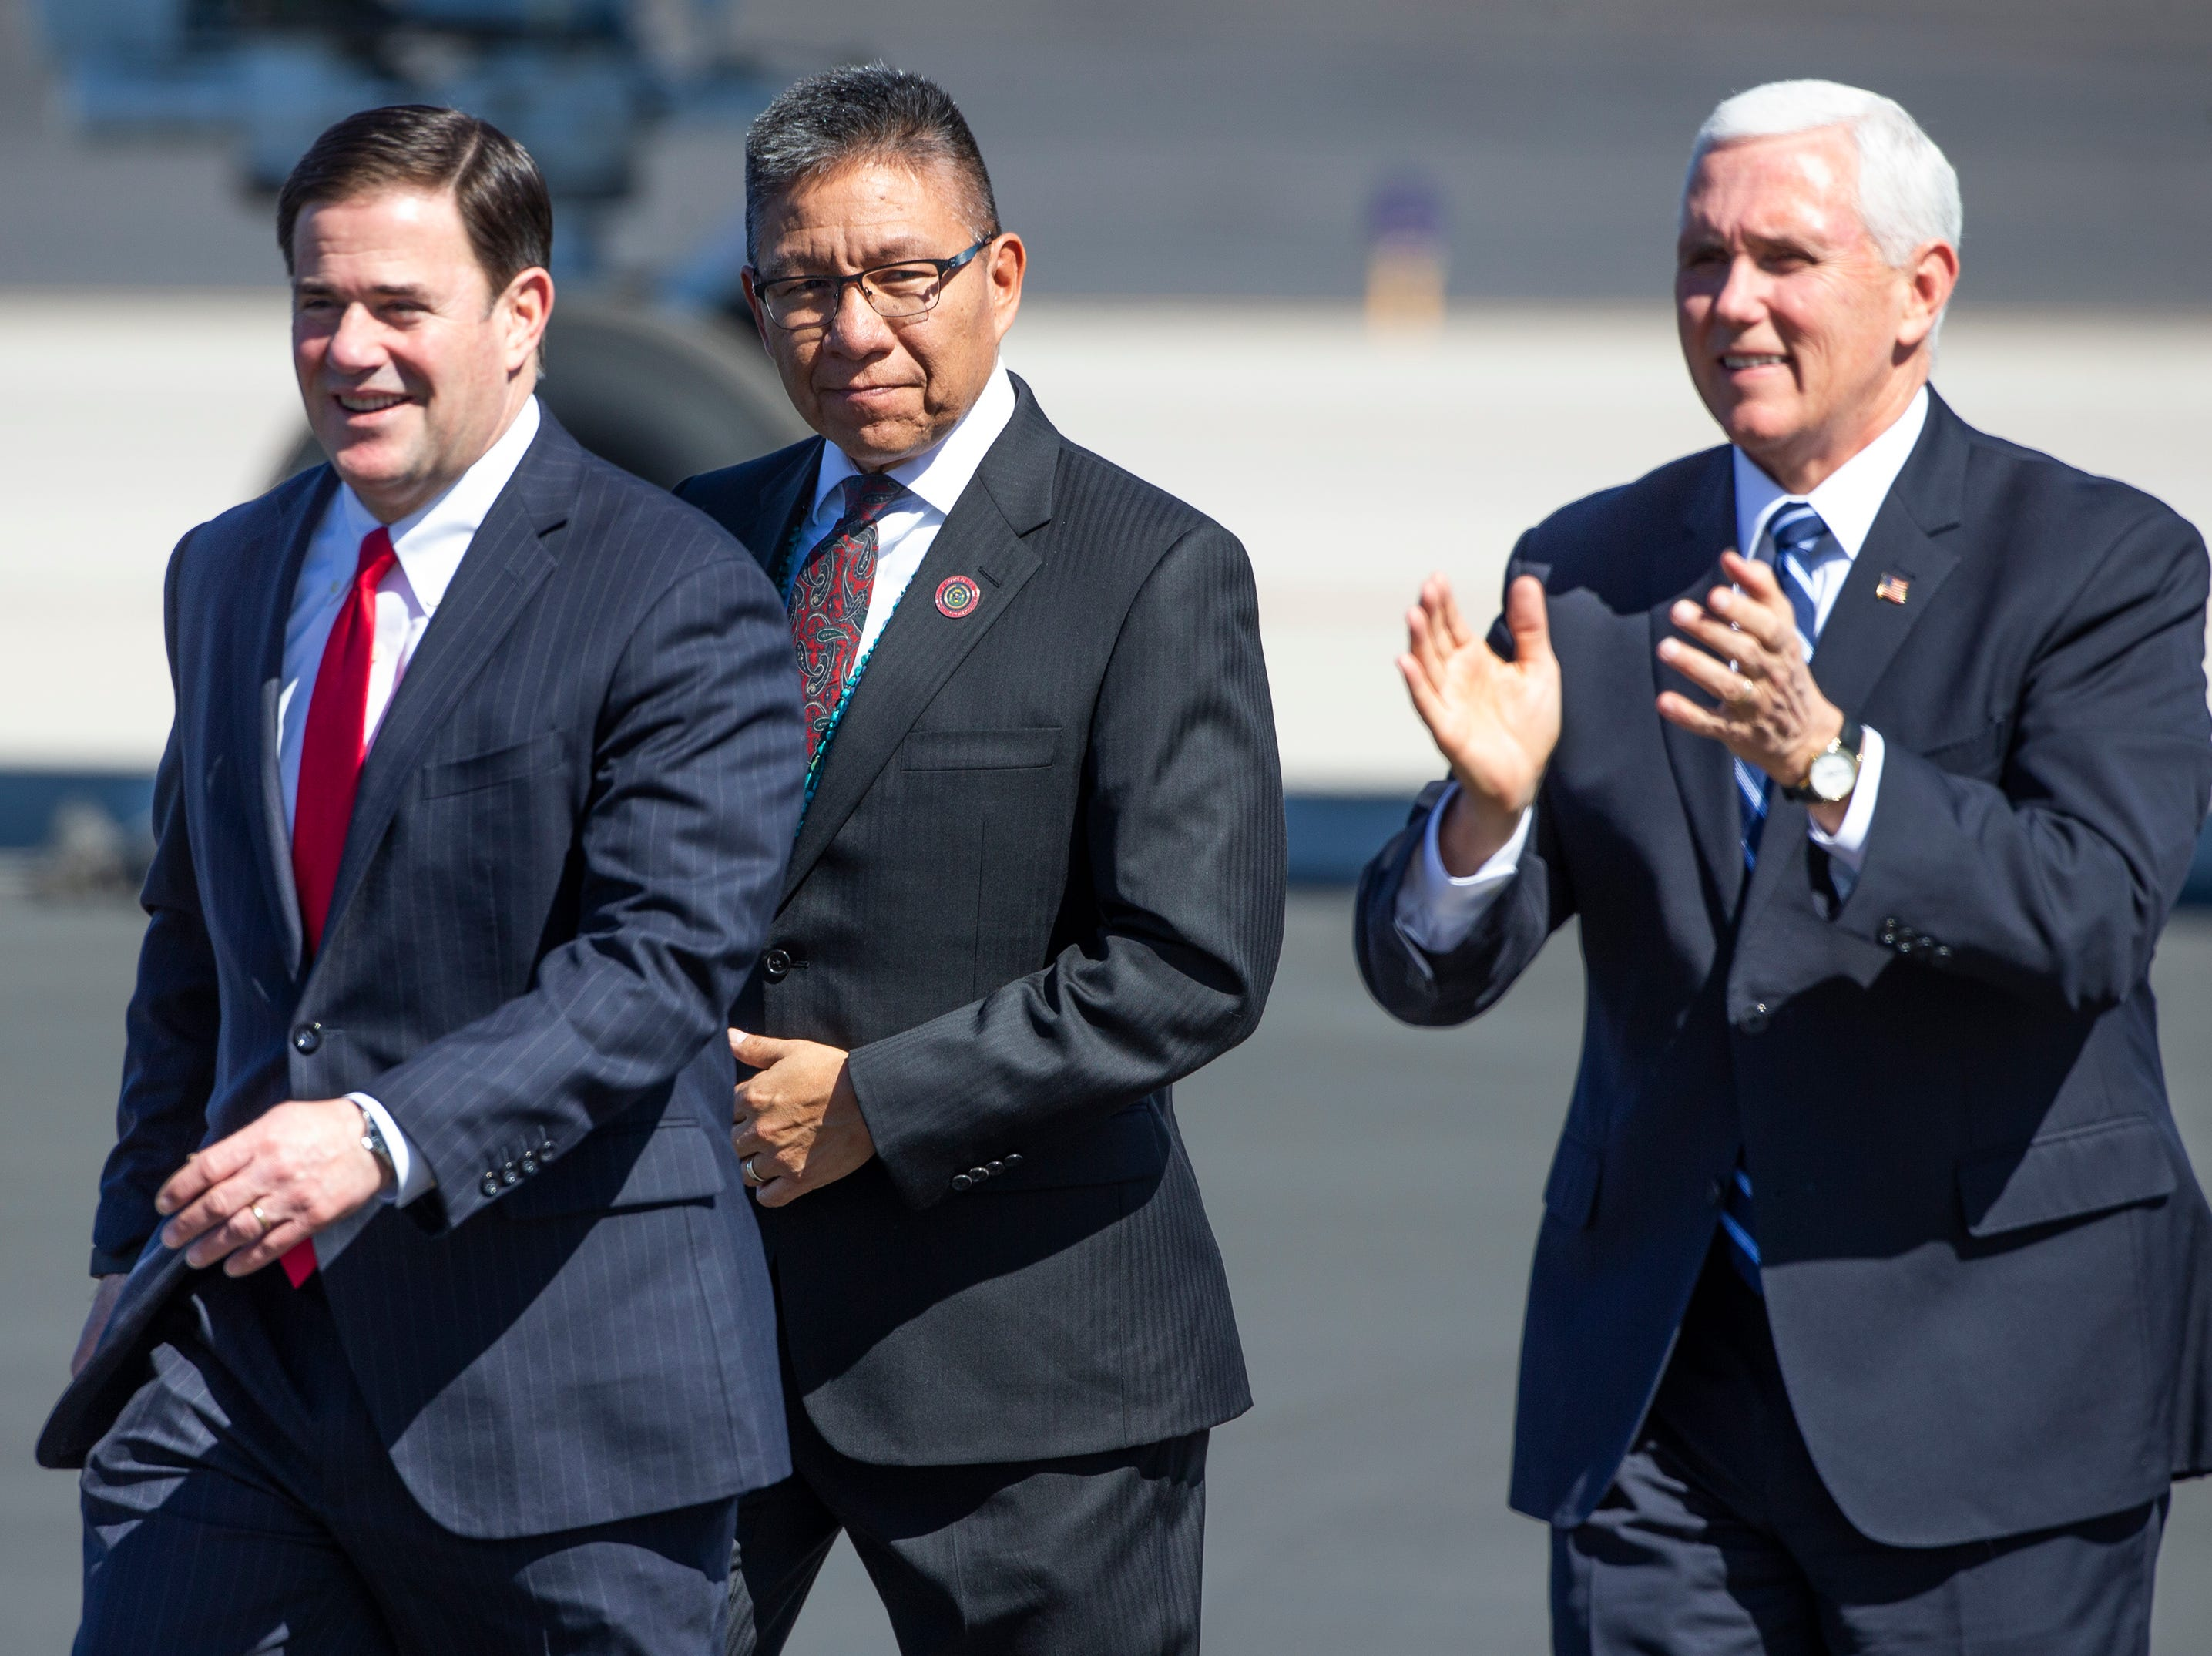 Vice President Mike Pence and Arizona Gov. Doug Ducey walk to greet a small crowd after arriving on Air Force Two at Sky Harbor International Airport in Phoenix on March 5, 2019.